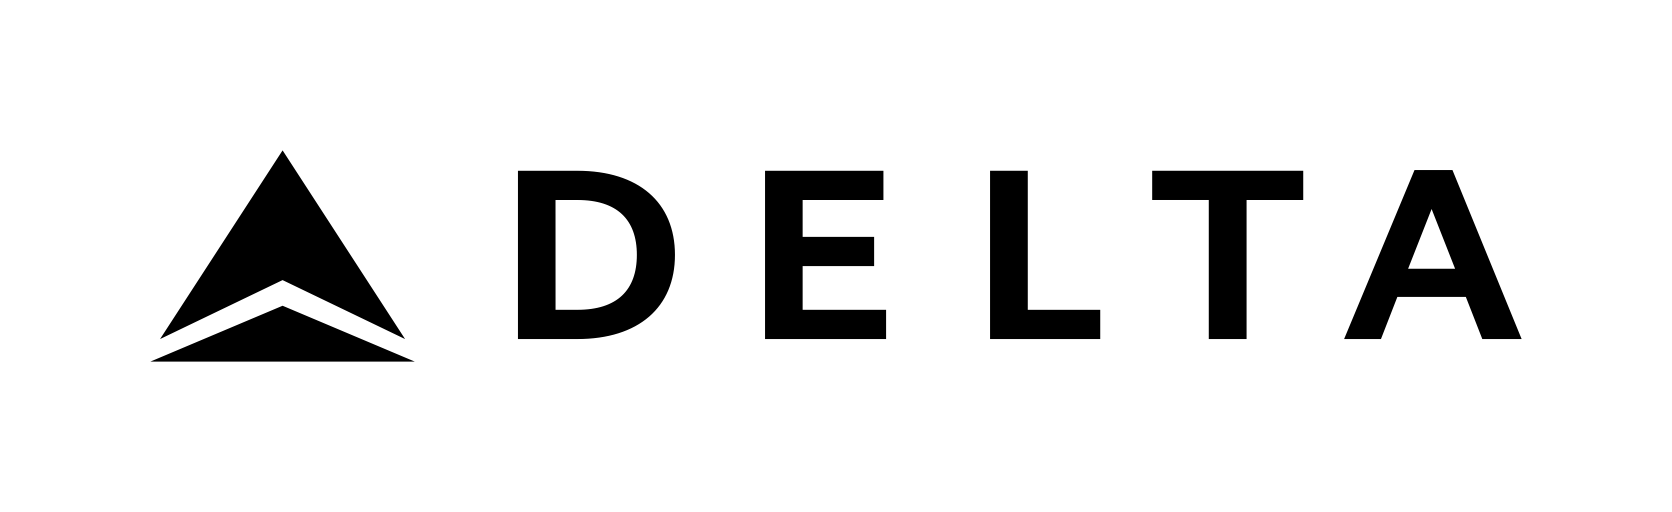 Delta logo png. Transparent stickpng